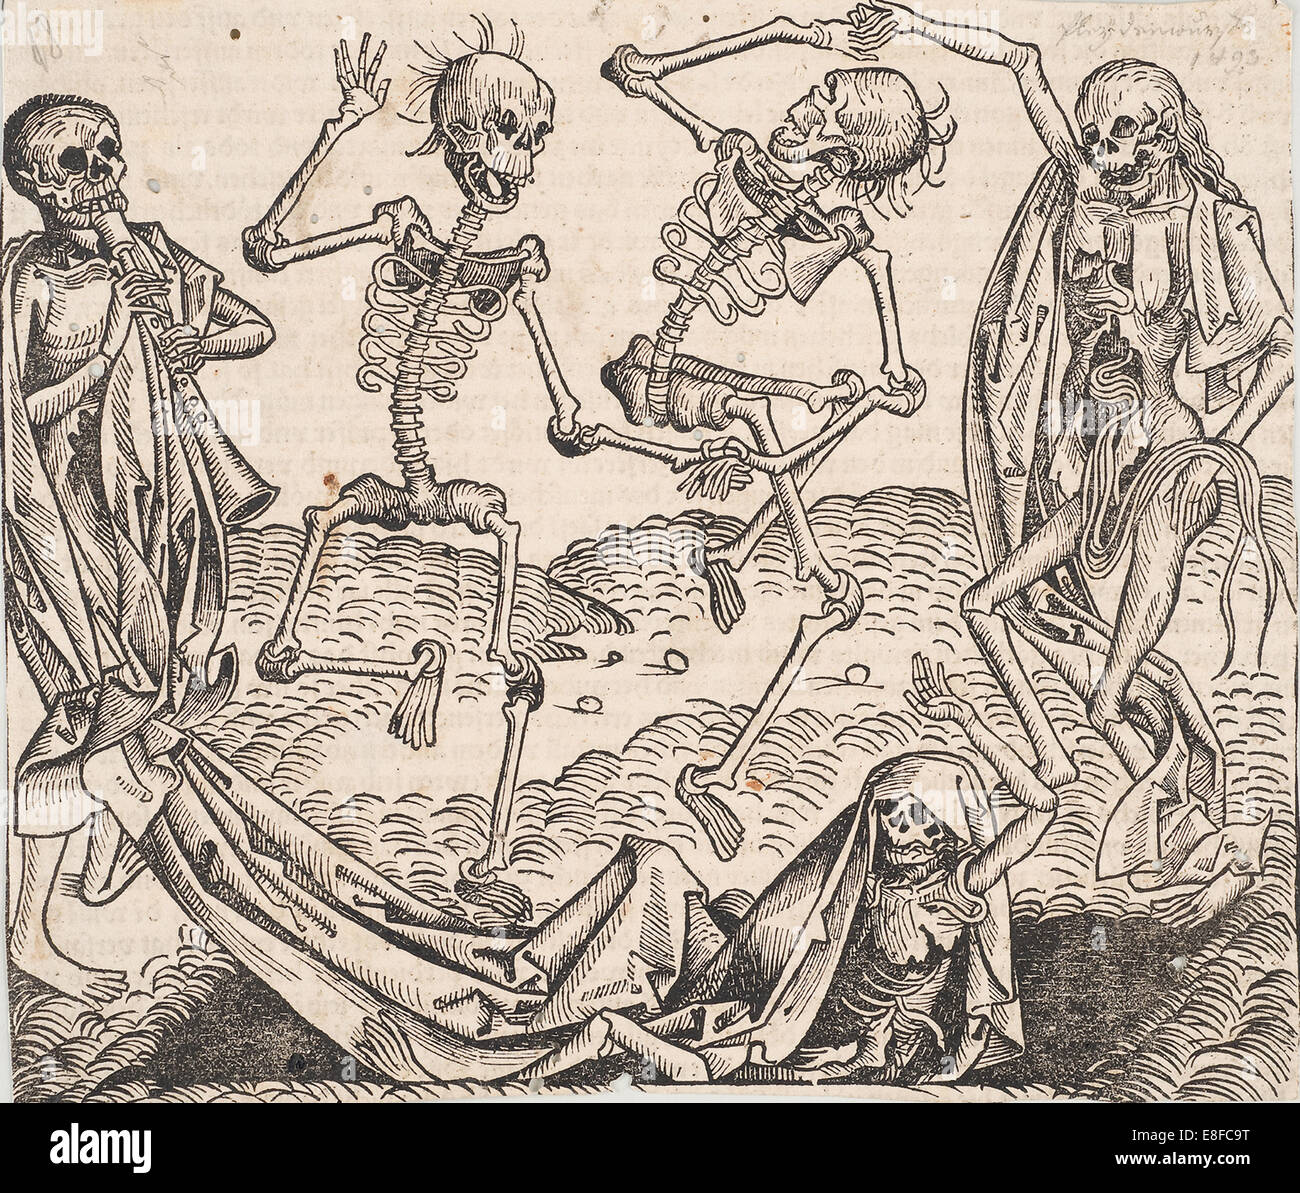 Dance of Death (from the Schedel's Chronicle of the World). Artist: Wolgemut, Michael (1434-1519) - Stock Image